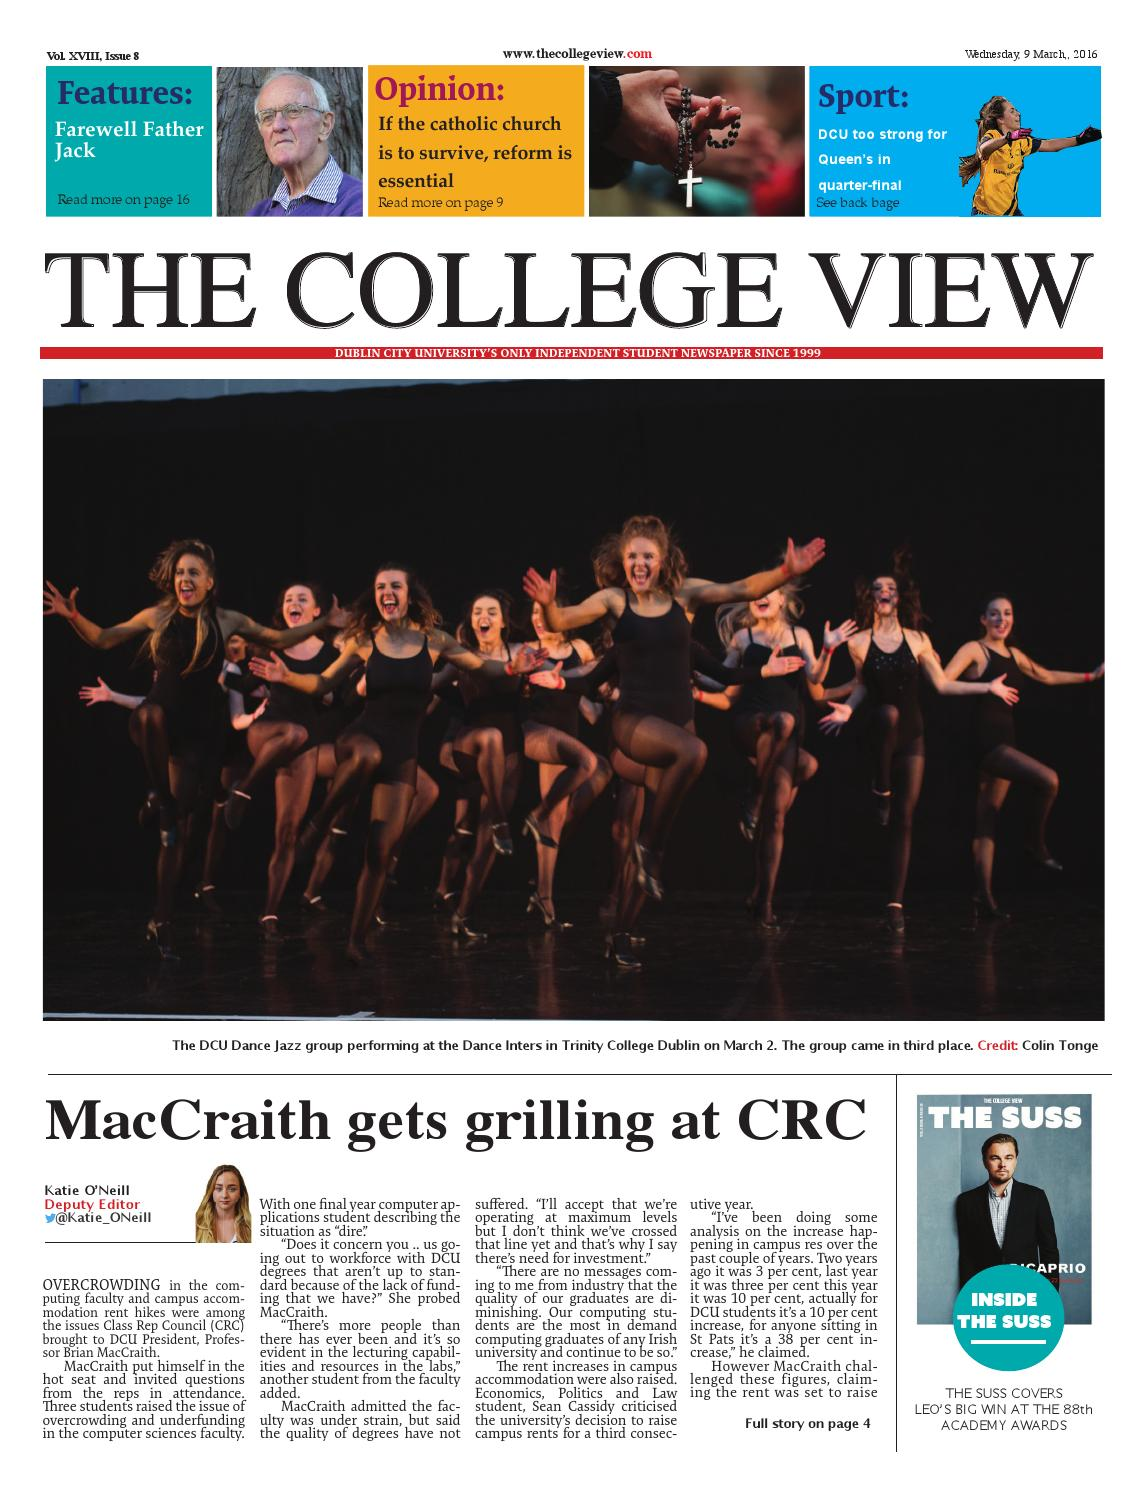 The College View - Issue 8 - XVIII by The College View - issuu